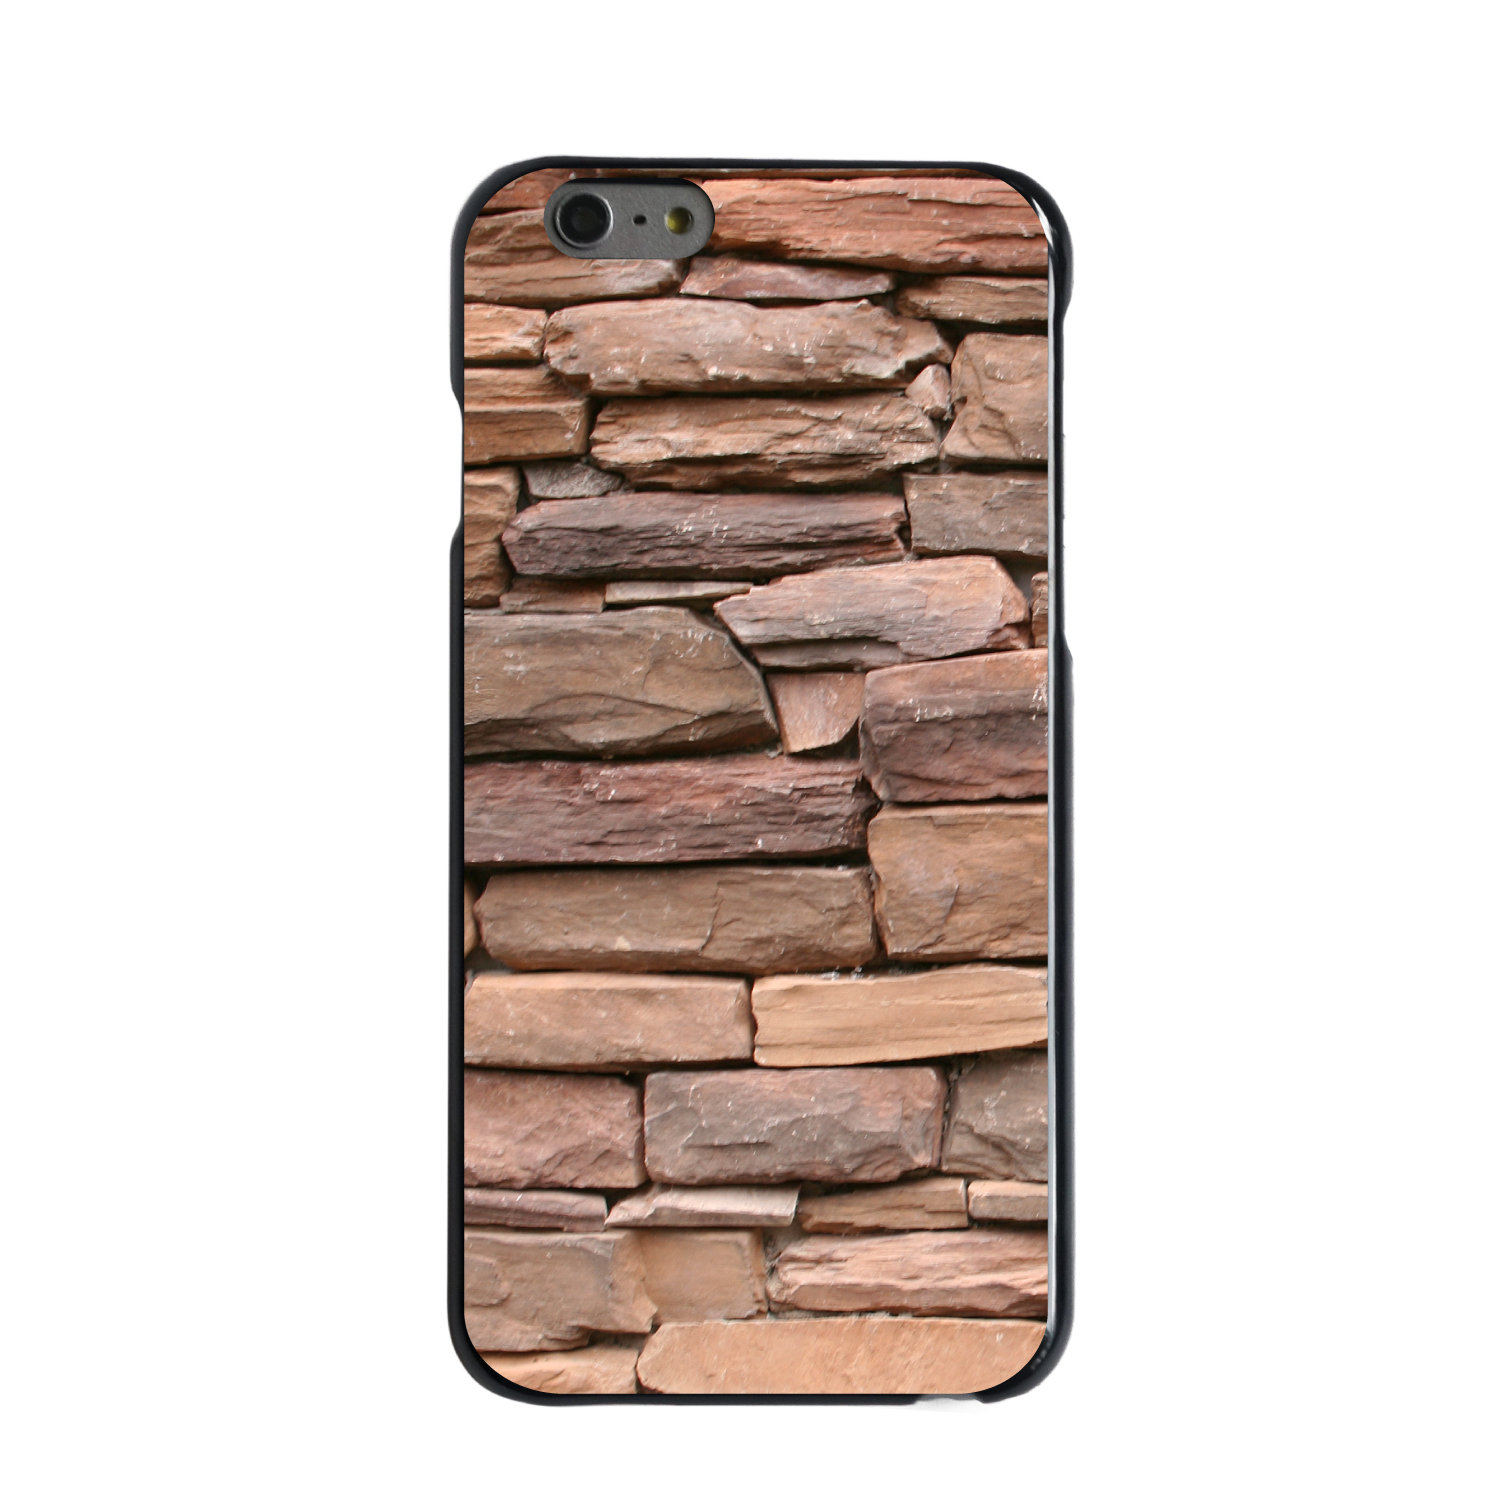 "CUSTOM Black Hard Plastic Snap-On Case for Apple iPhone 6 / 6S (4.7"" Screen) - Stacked Stone Wall"